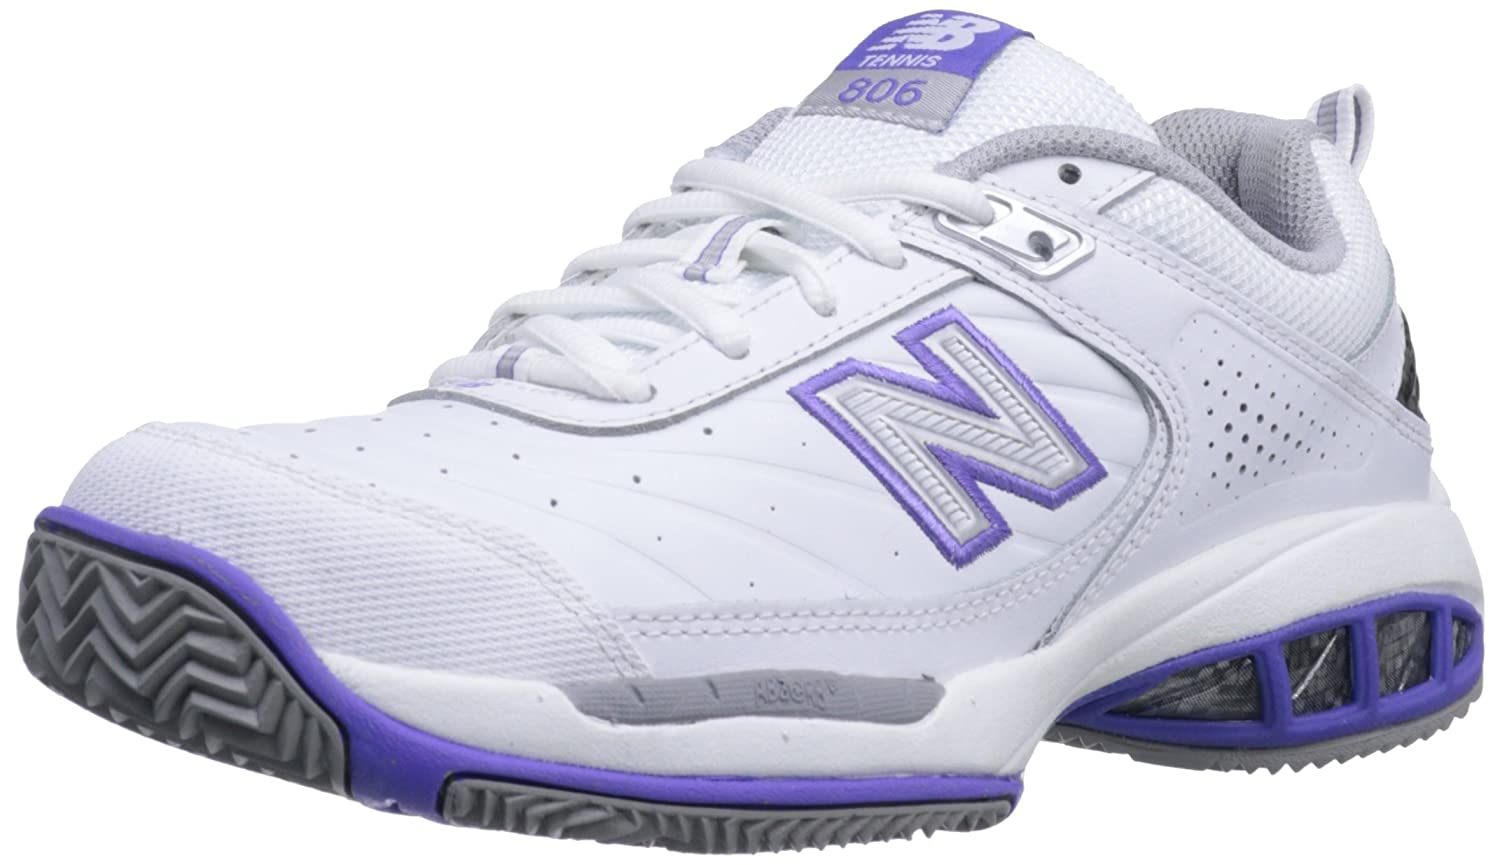 New Balance Women's WC806 Tennis-W Tennis Shoe B0098G2L04 8.5 2A US|White